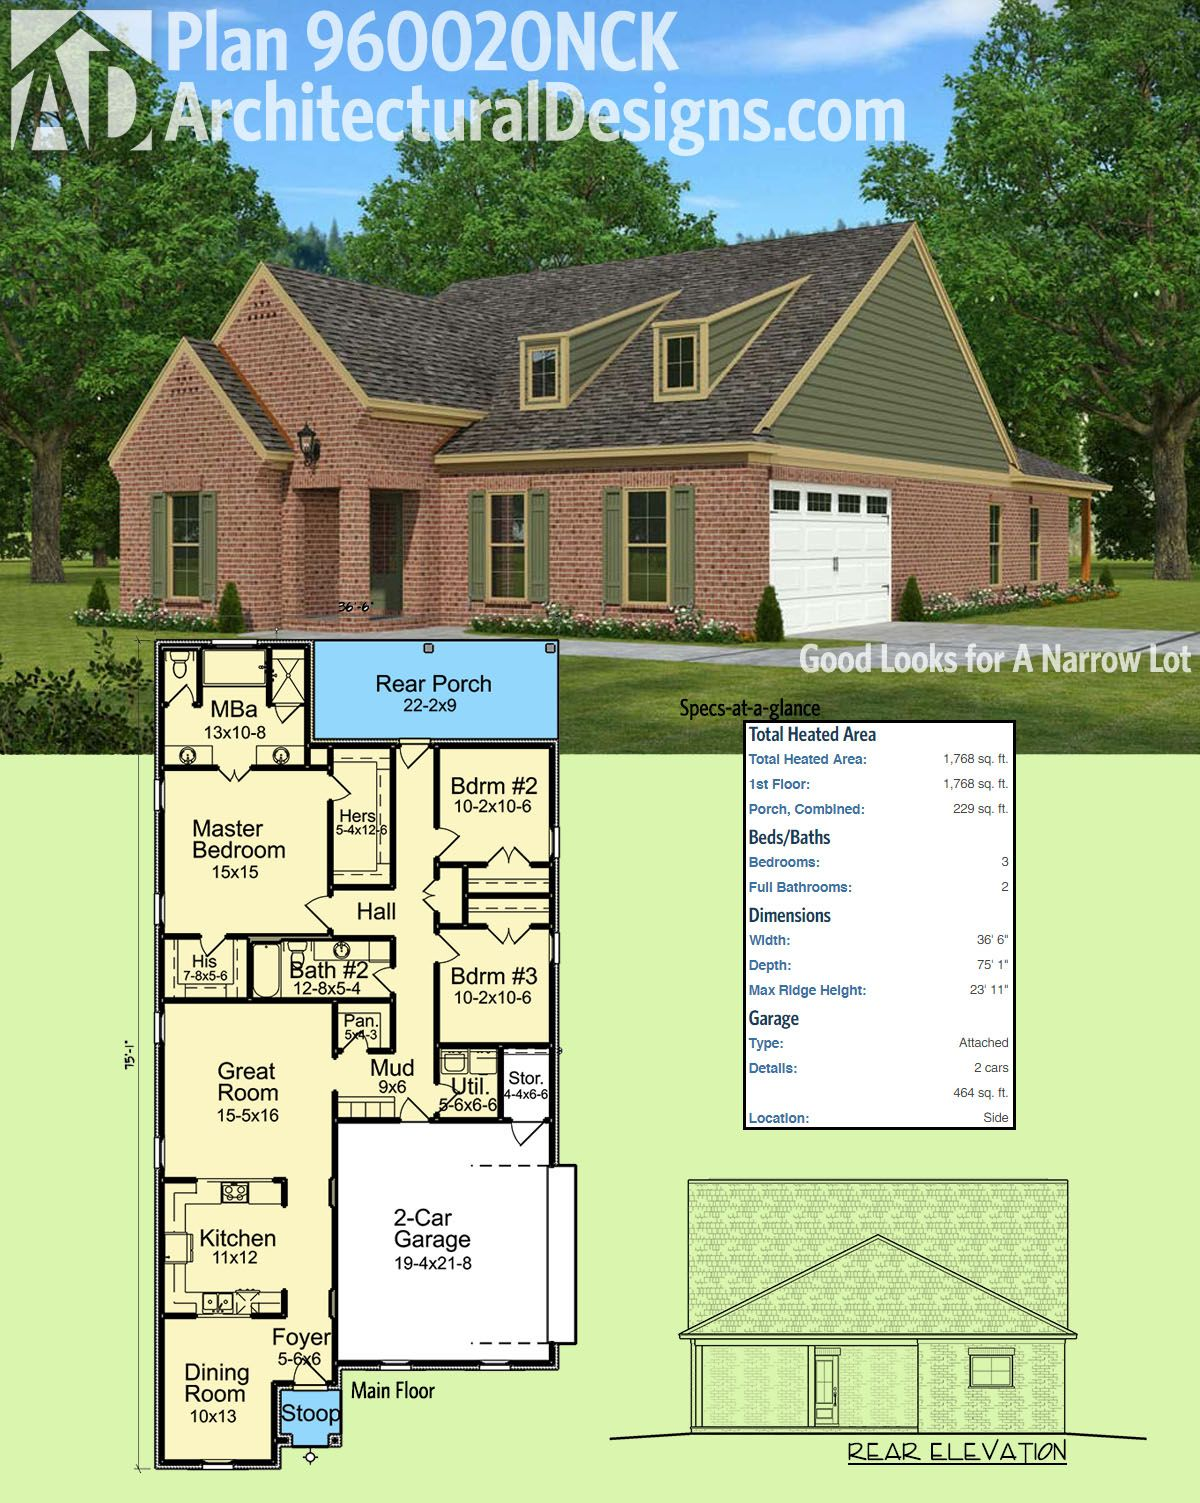 plan 960020nck good looks for a narrow lot architectural design architectural designs house plan 960020nck is great for your narrow lot only 36 6